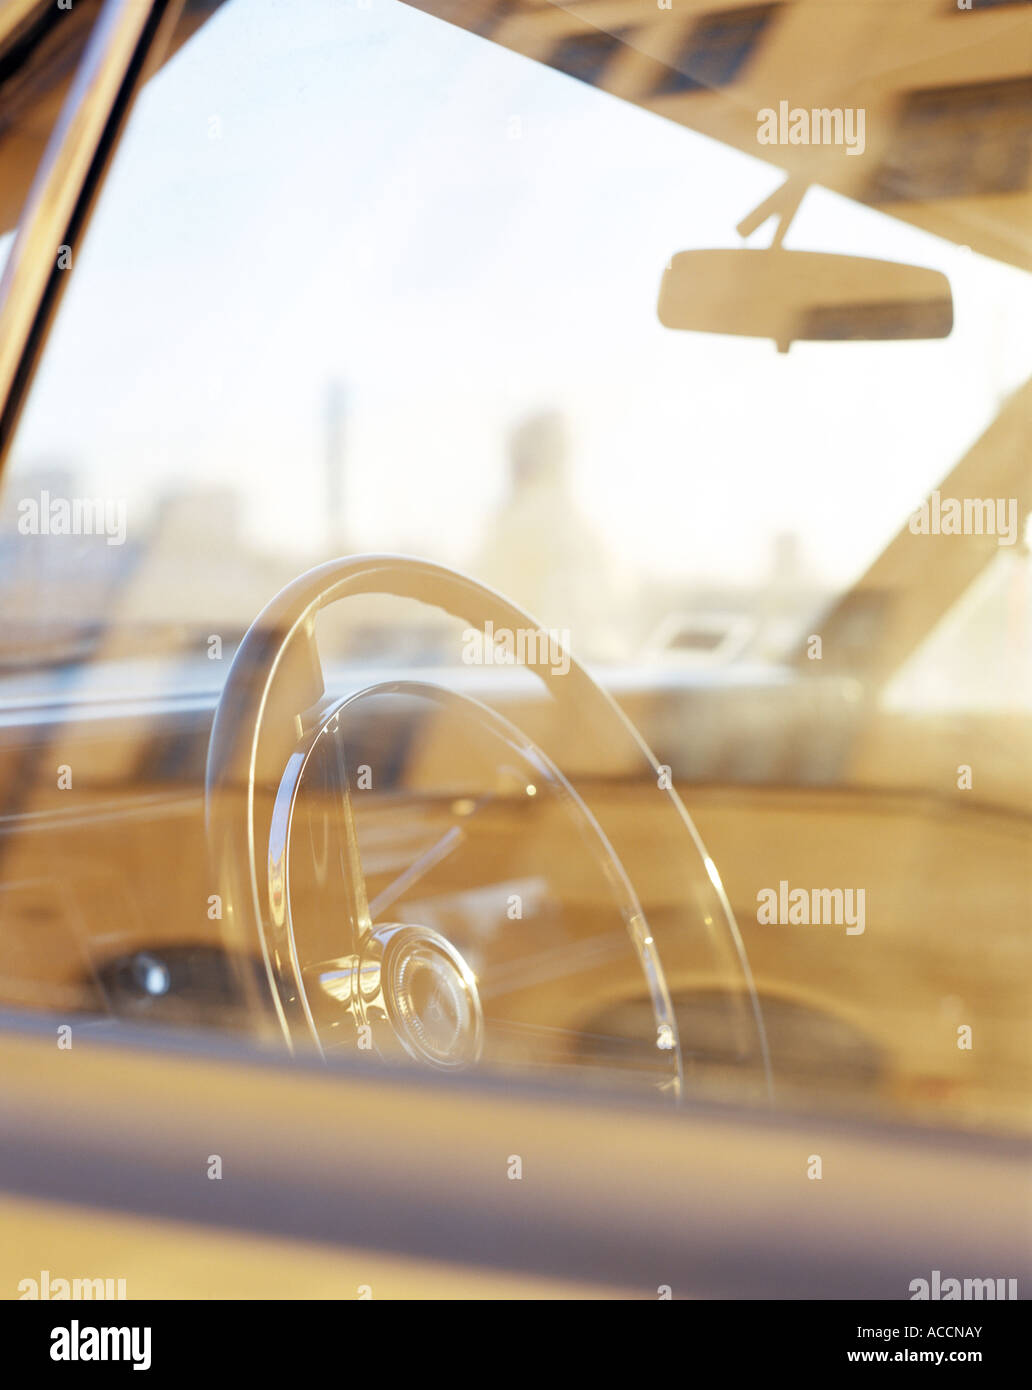 The interior of a car photograohed through window of the car. - Stock Image